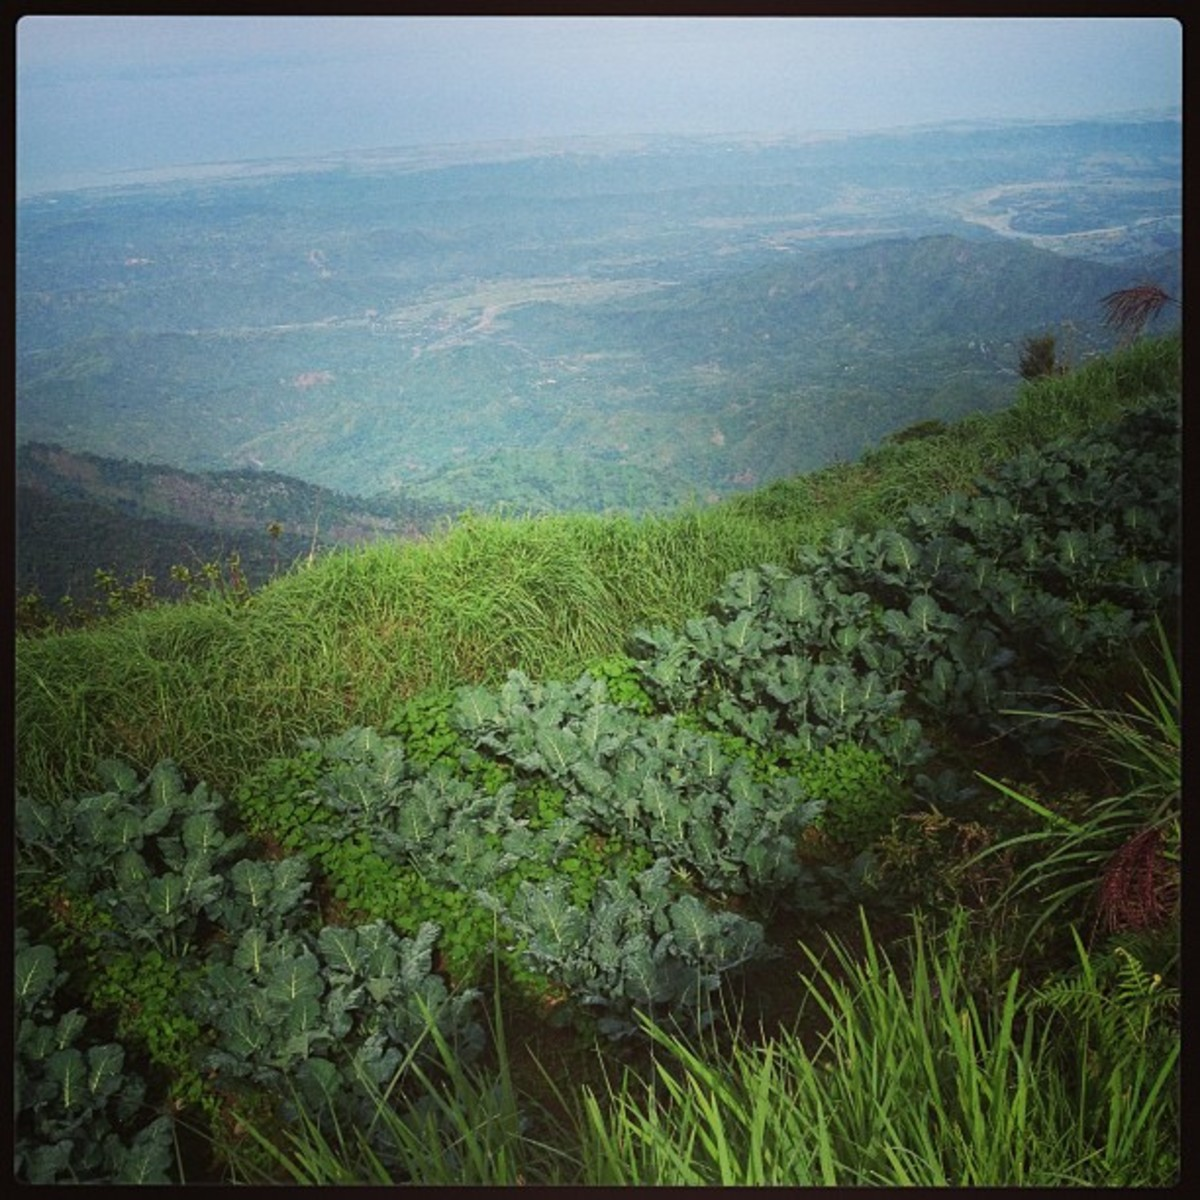 Broccoli plants grown on the mountain